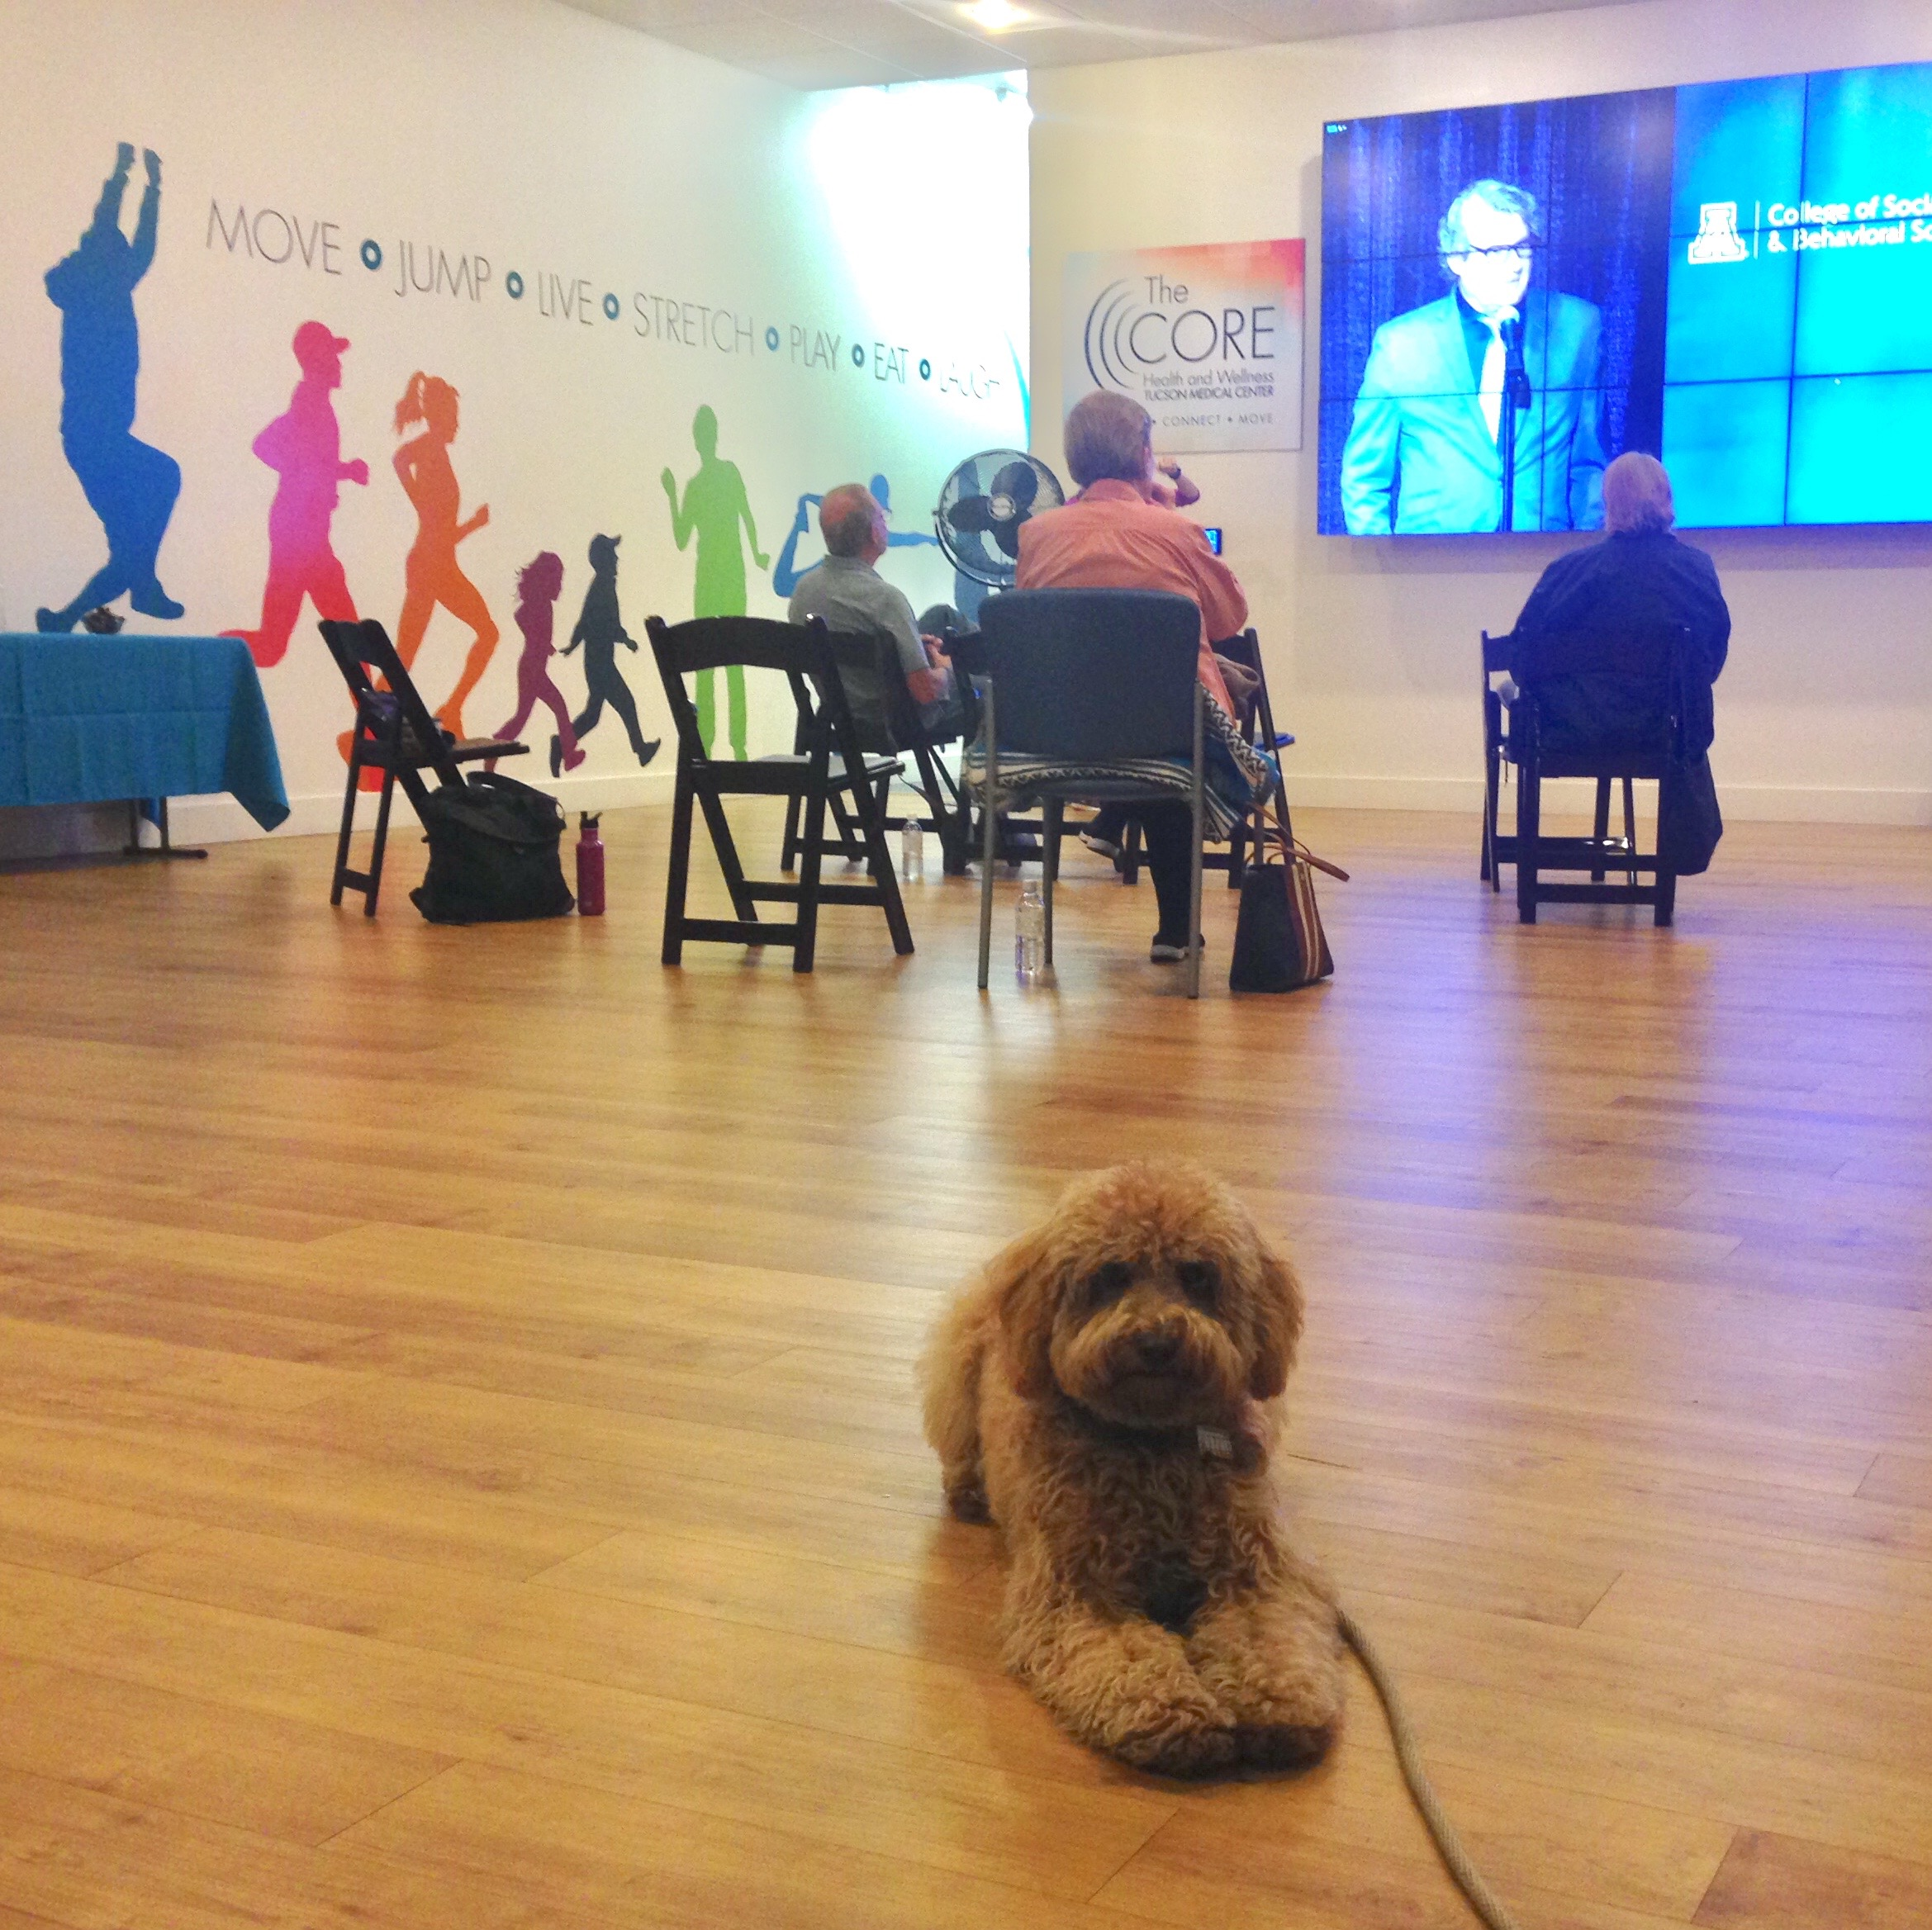 Lizzie McSquare remains in her down-stay at The Core at La Encantada, a dog-friendly space that offers free lectures and simulcasts on a variety of topics.